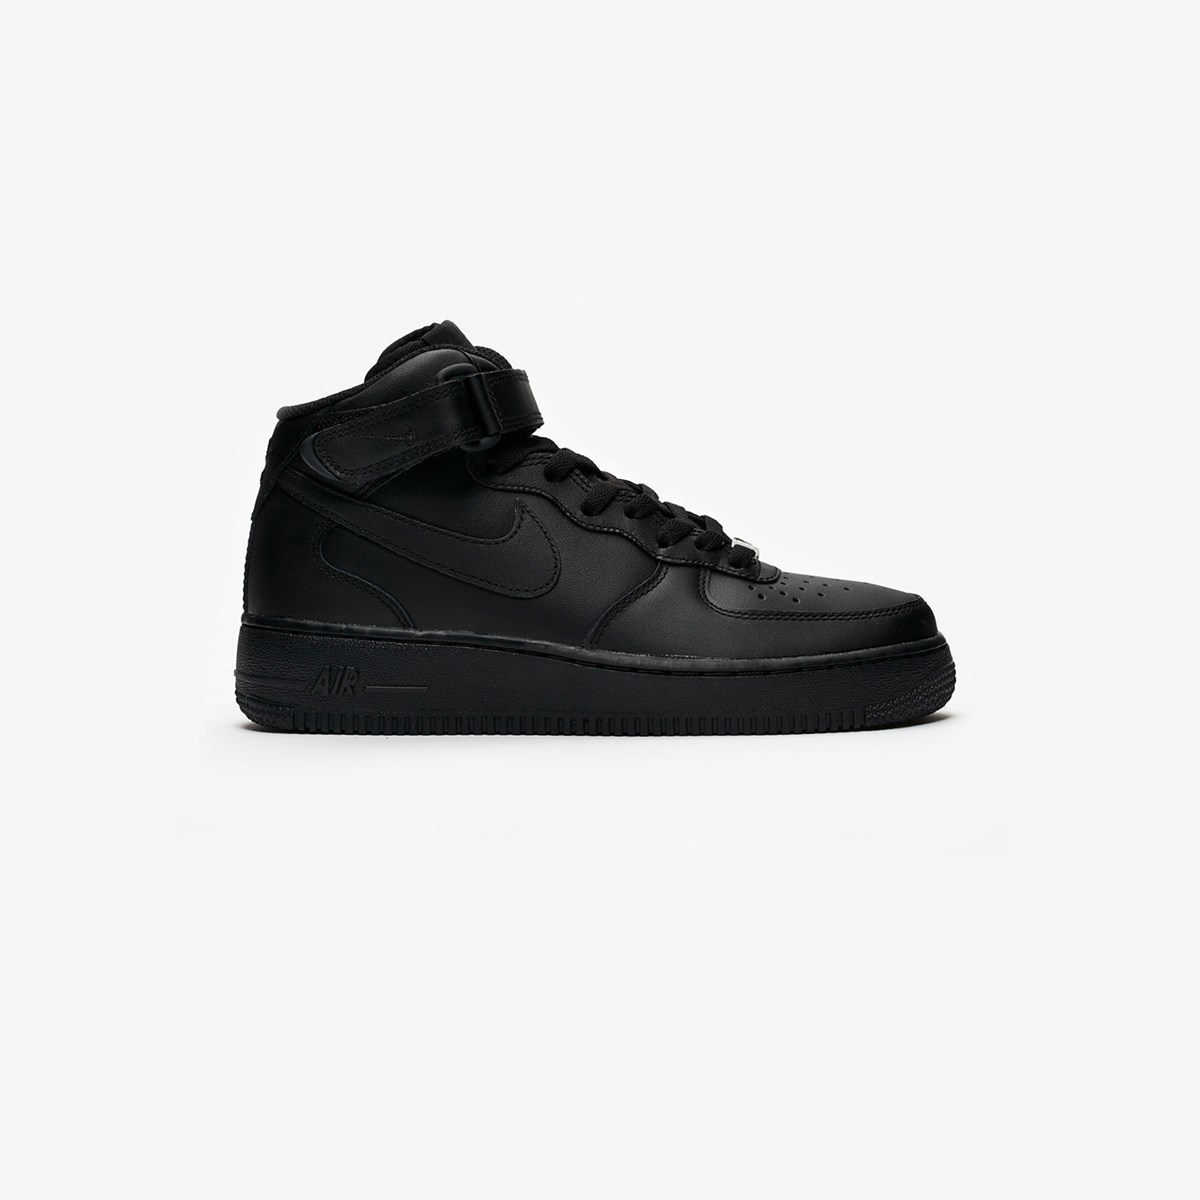 Nike Wmns Air Force 1 Mid 07 LE - 366731-001 - SNS | sneakers & streetwear online since 1999